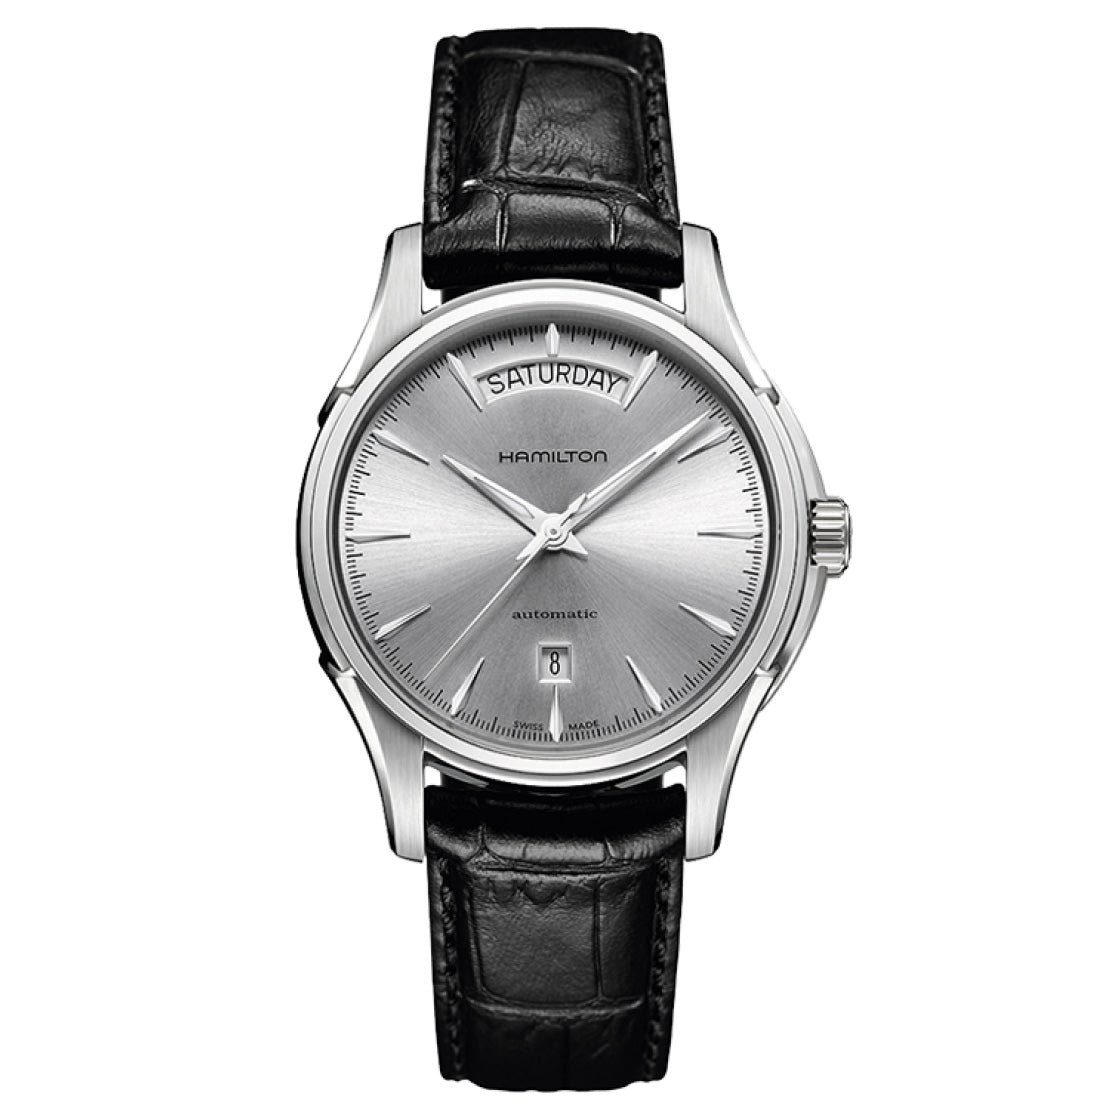 Hamilton Jazzmaster Day-Date 40mm Watch